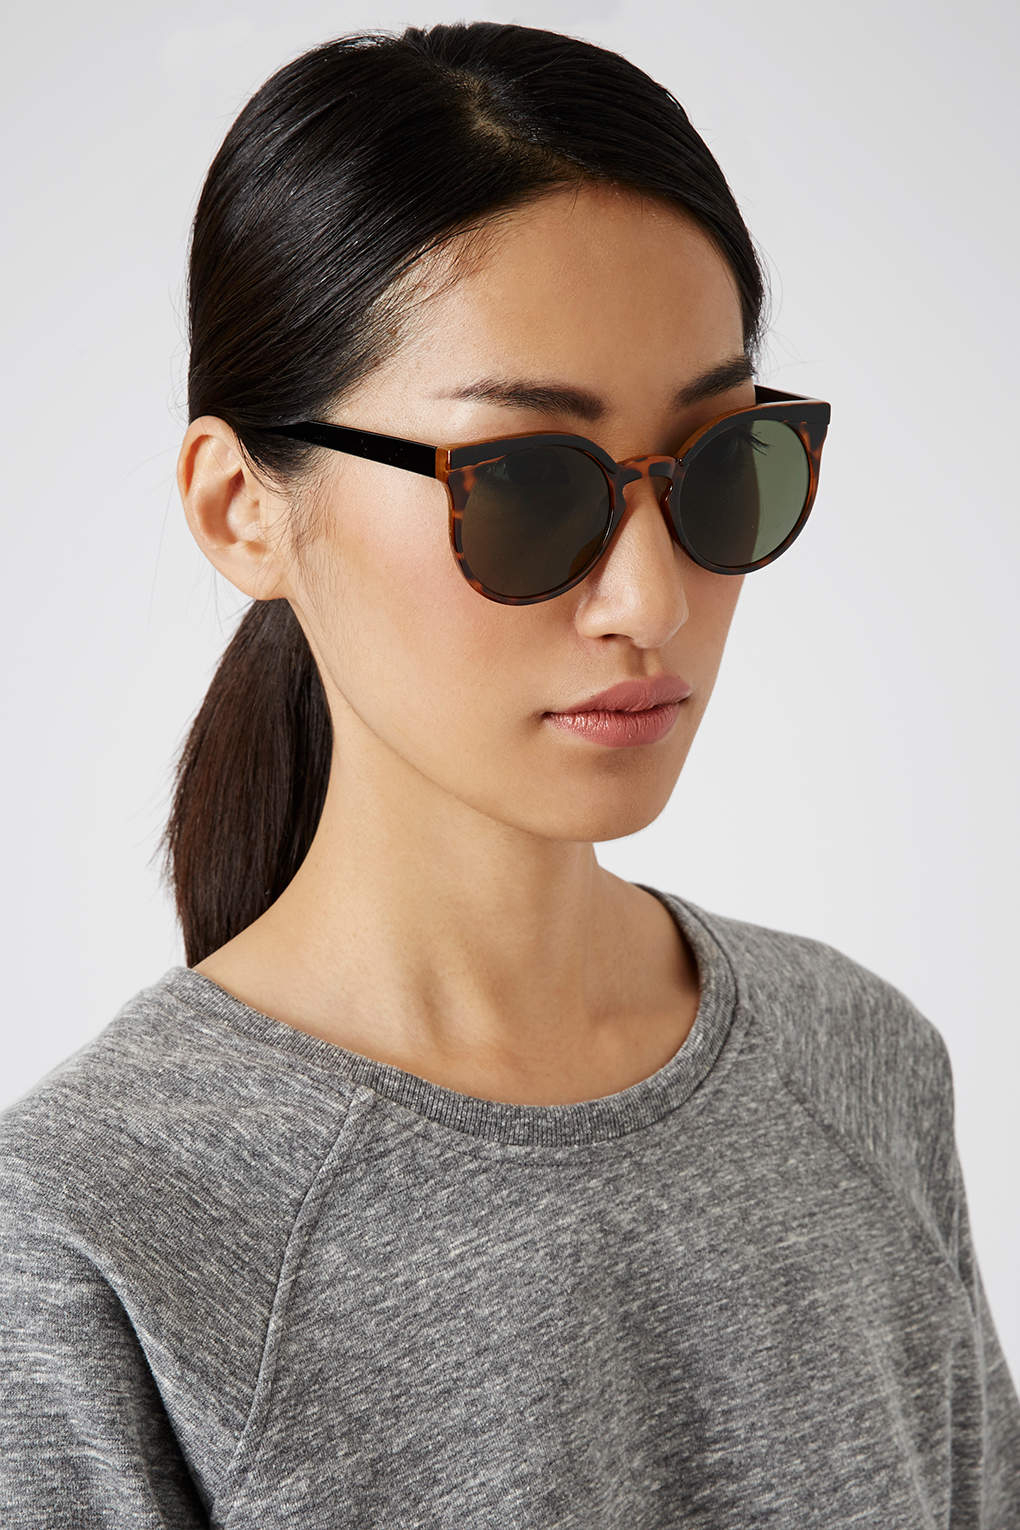 e215577bad0 Topshop Lexi Round Sunglasses in Brown - Lyst